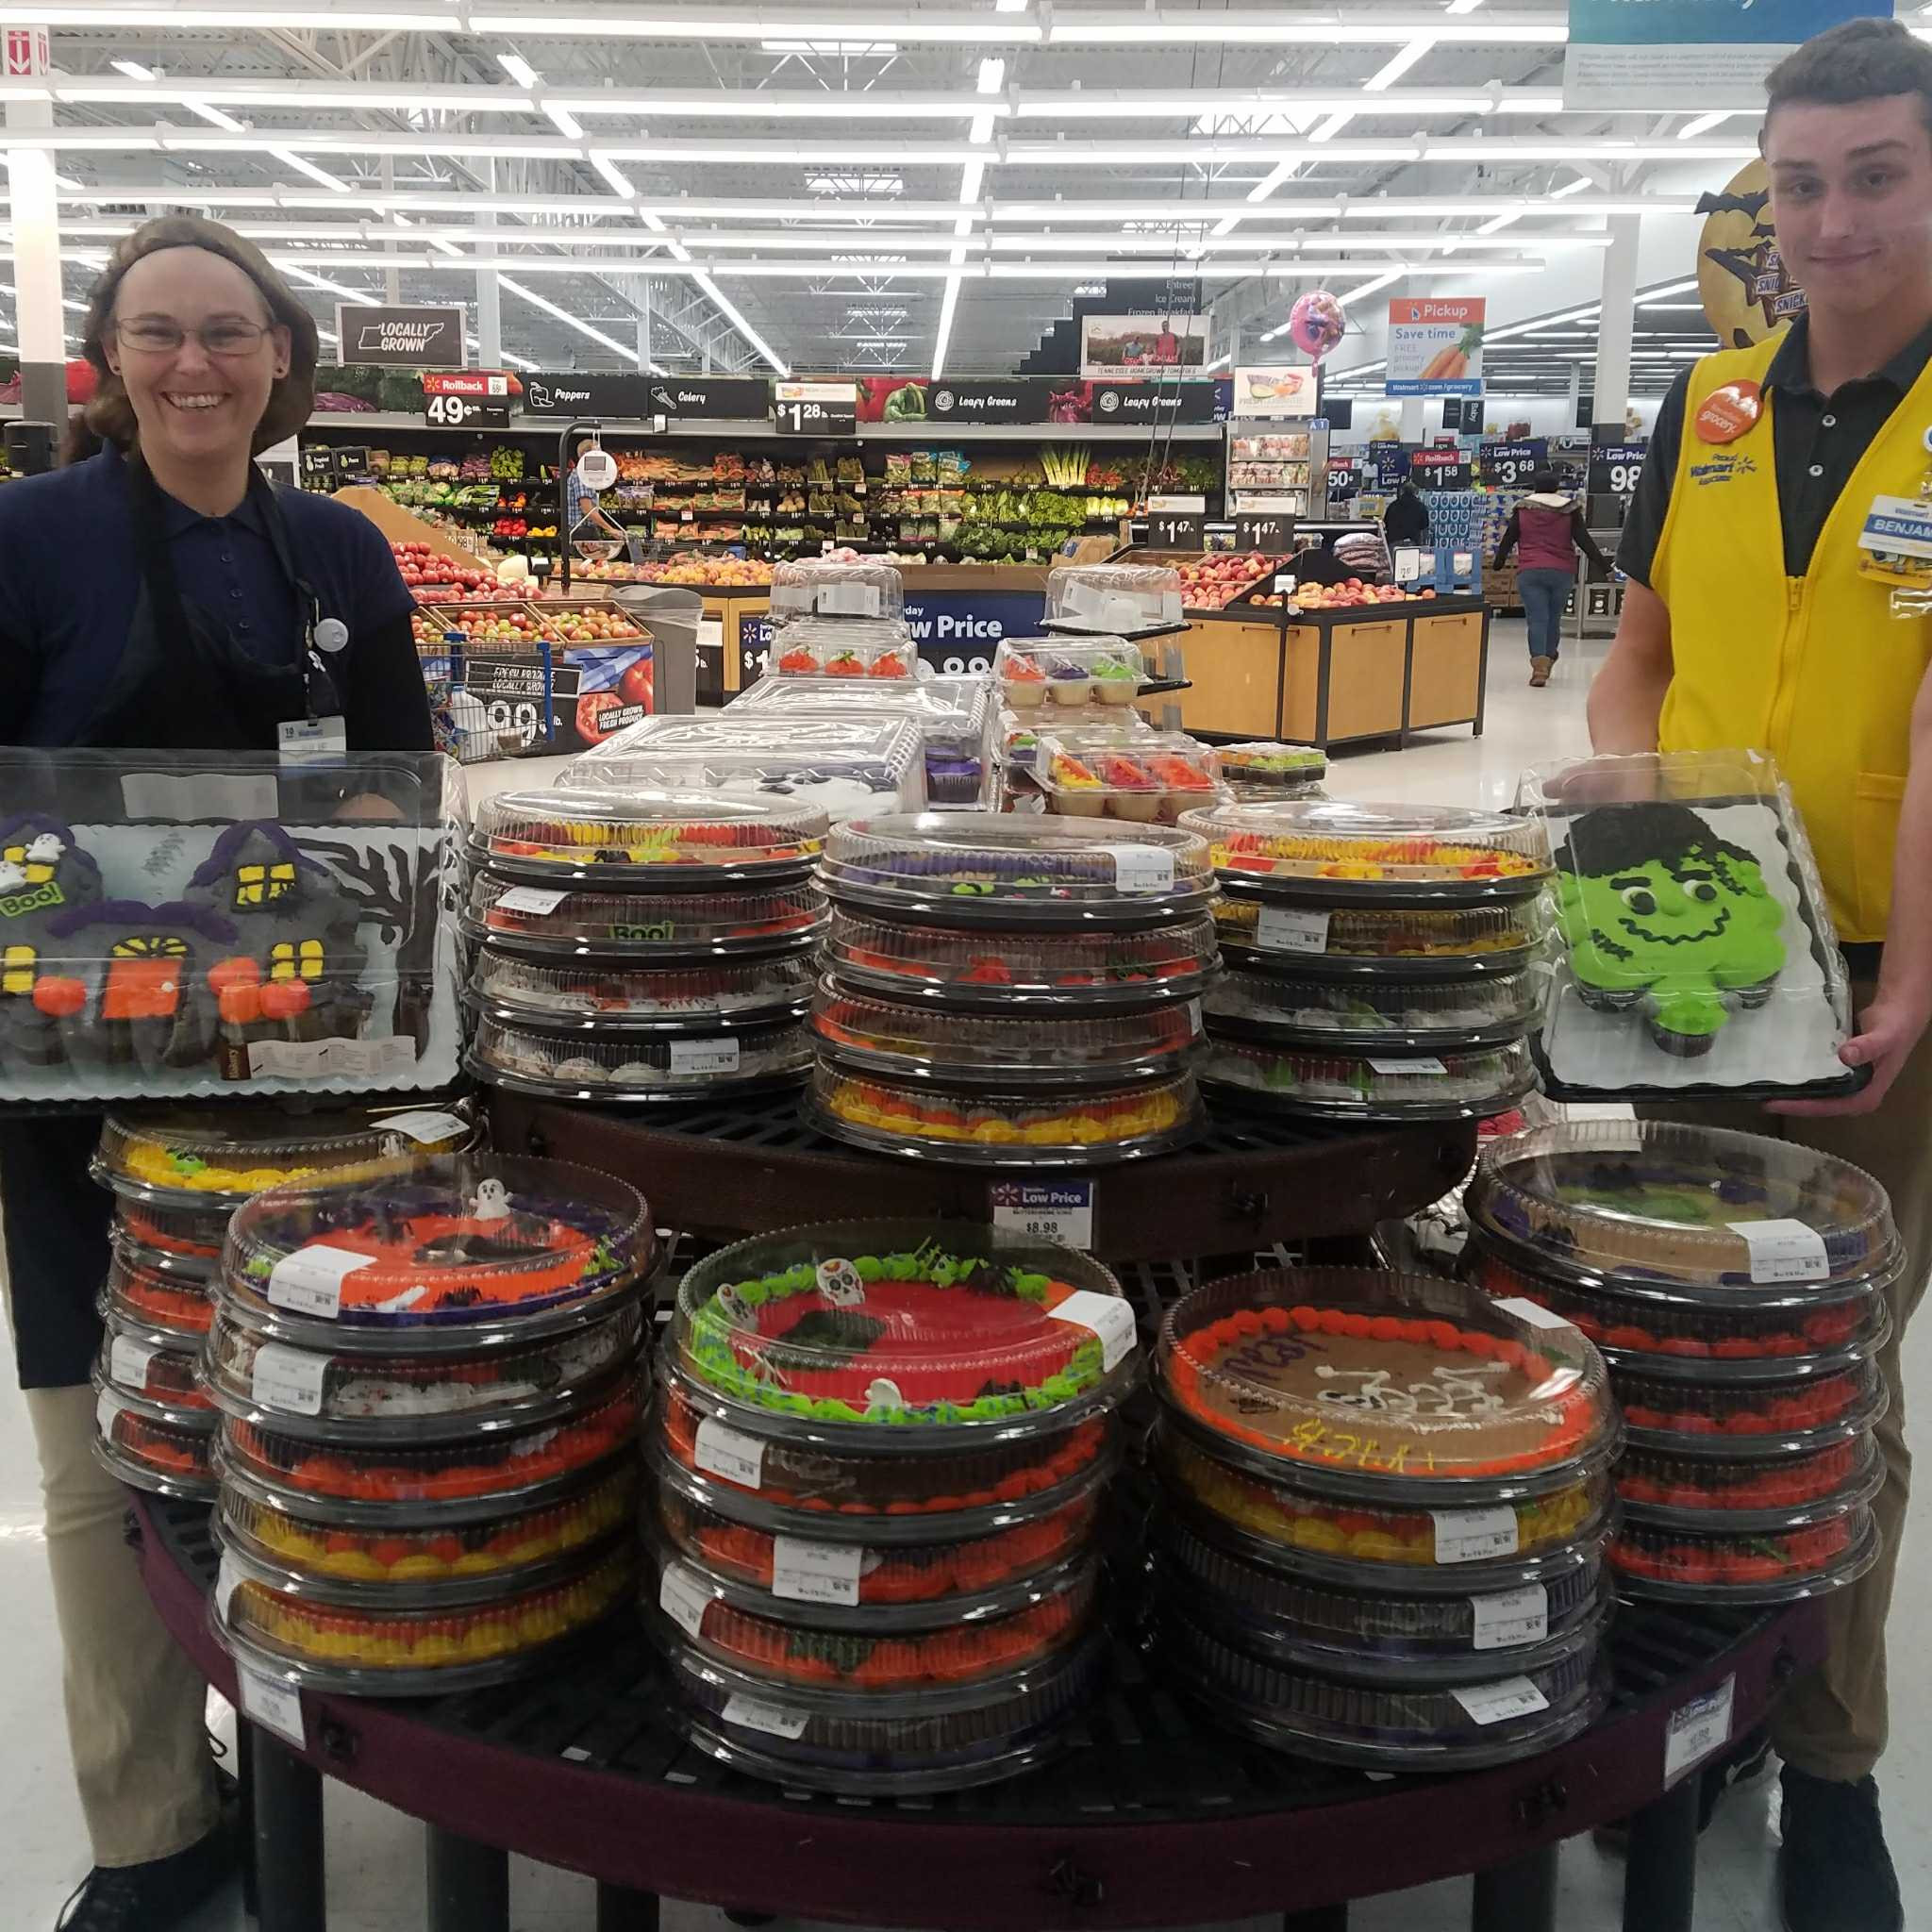 Halloween Cakes At Walmart  Find out what is new at your Knoxville Walmart Supercenter